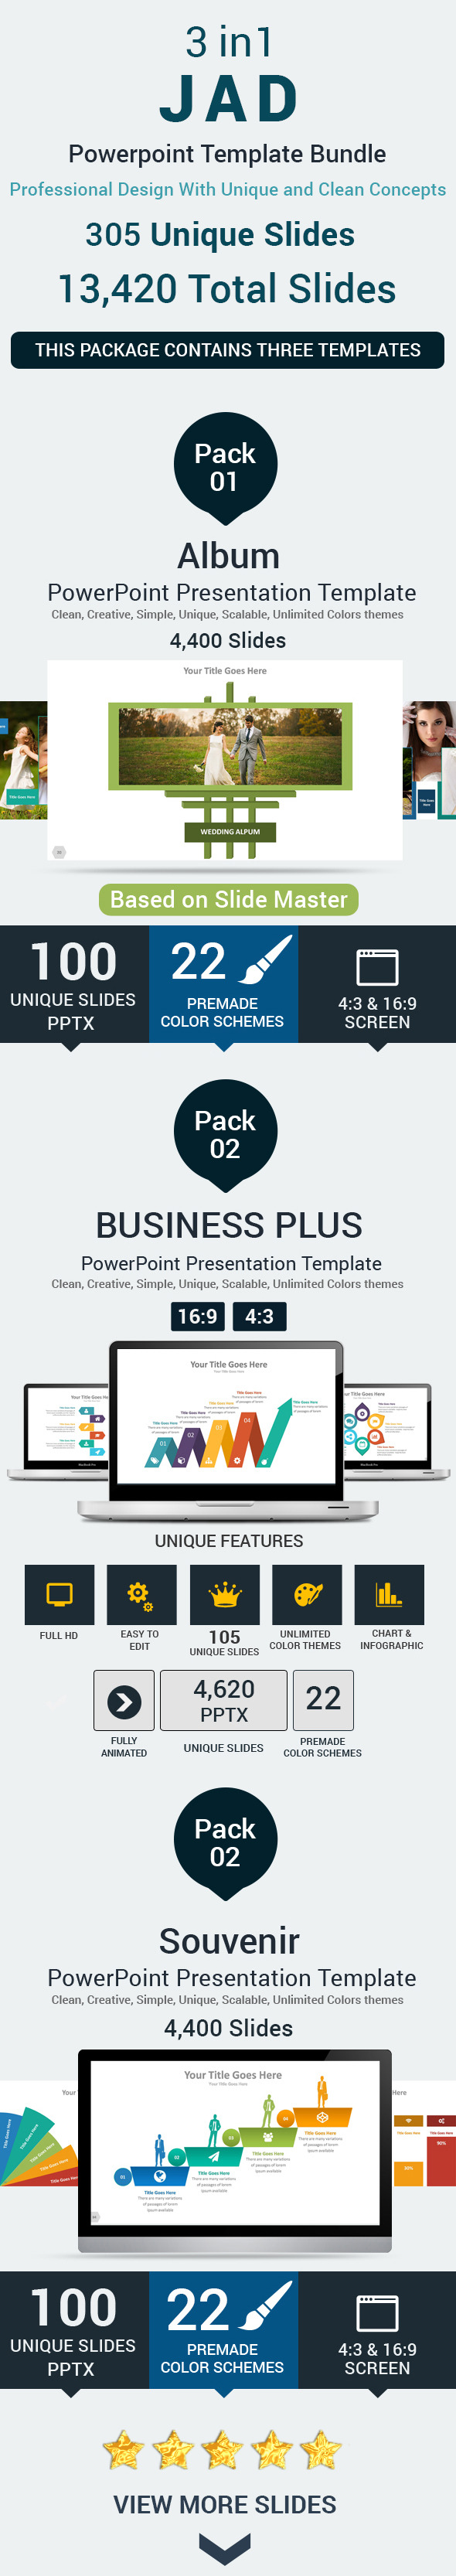 GraphicRiver 3 in 1 JAD PowerPoint Template Bundle 11532331